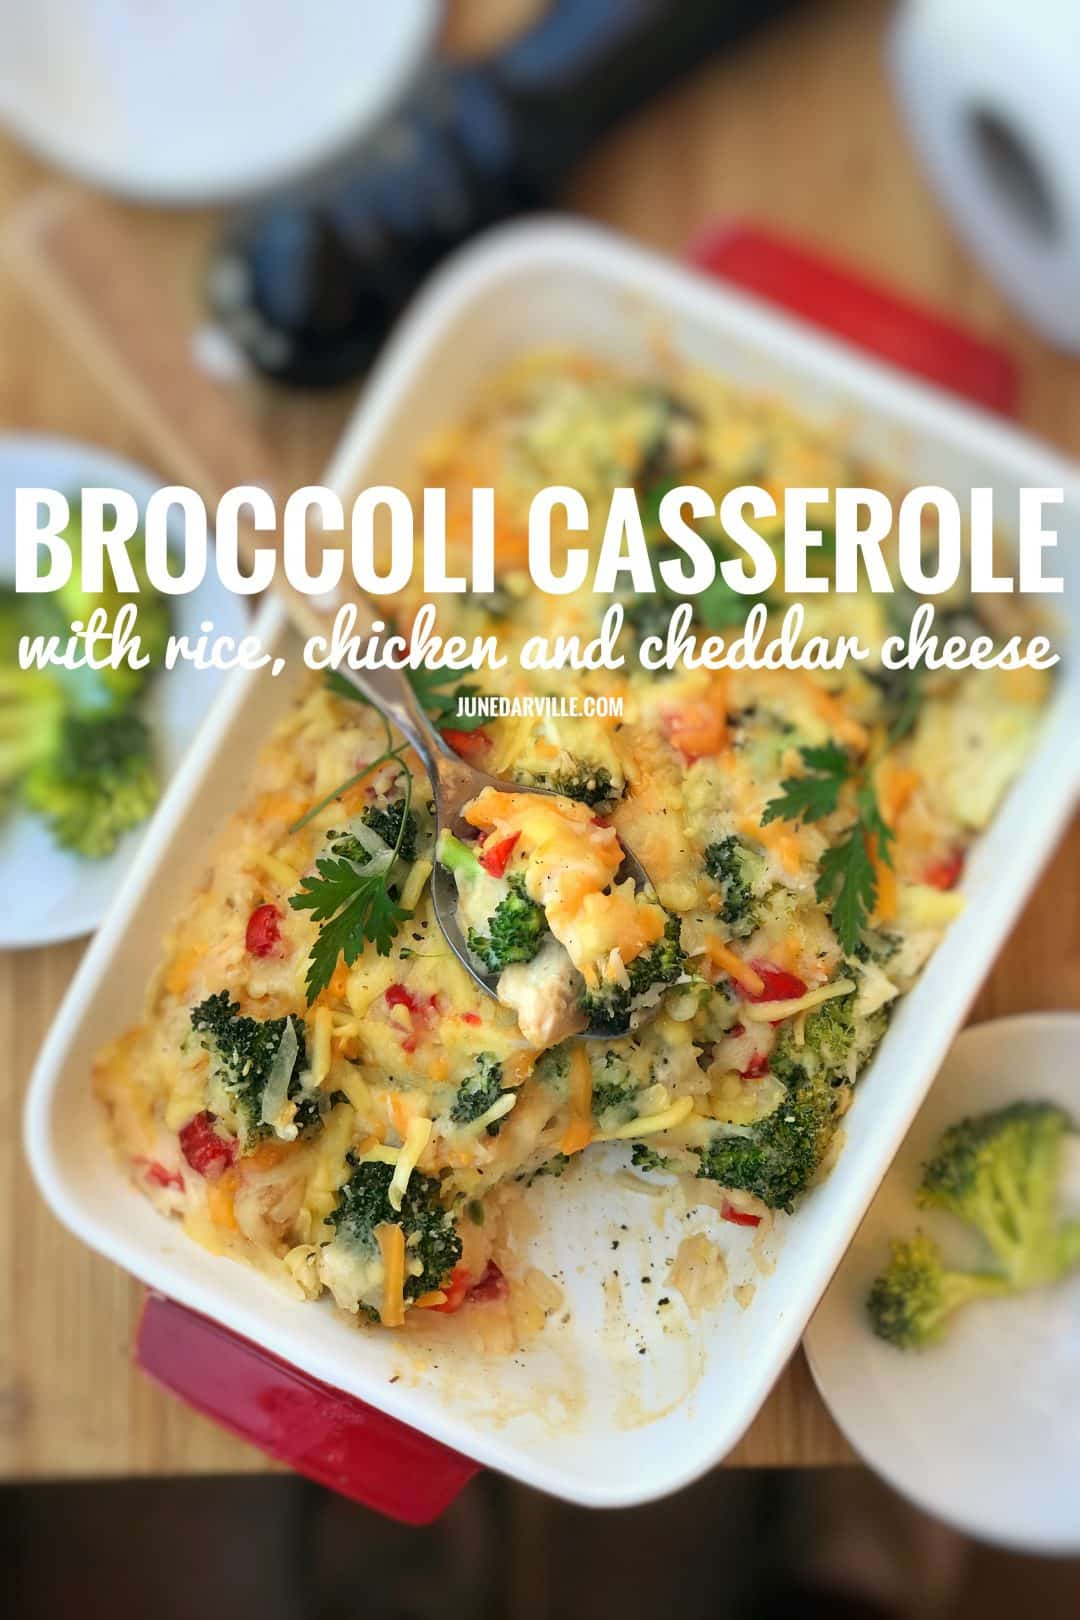 This broccoli casserole would be a great dish for my next potluck party! Hey, you can also leave out the chicken and turn it into a vegetarian oven dish.